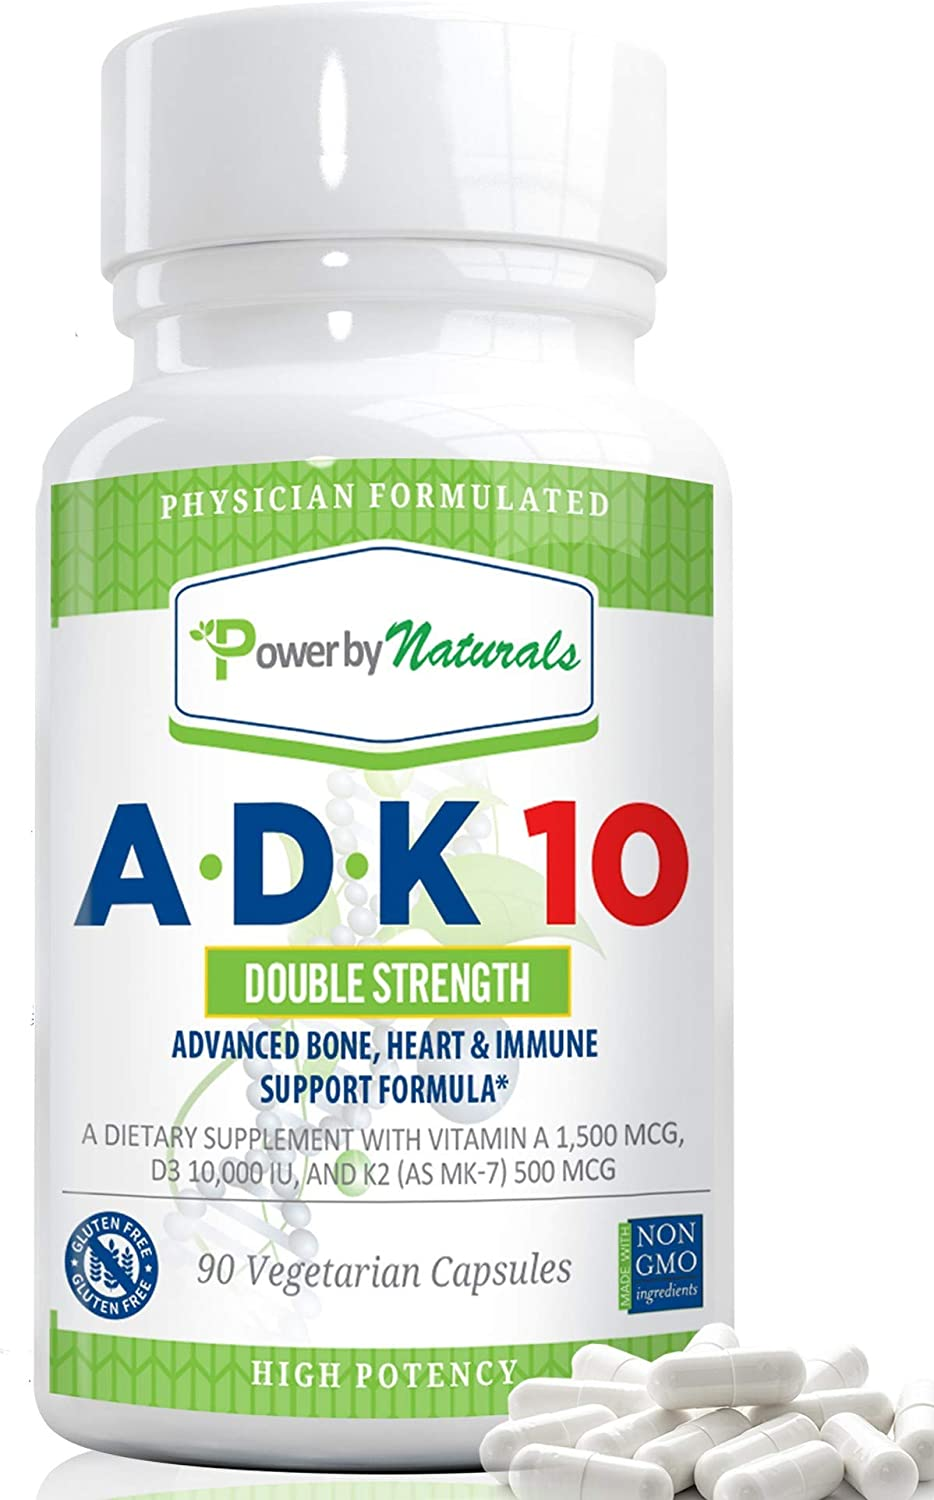 Power By Naturals - ADK 10 Vitamin - Dr Formulated, Double Strength A D K 10000 iu - High Potency ADK10 - Vitamins A, D3 (10,000 iu), K2 (as MK-7) - Supplement for Bones Heart Immune Support, 90 Pills